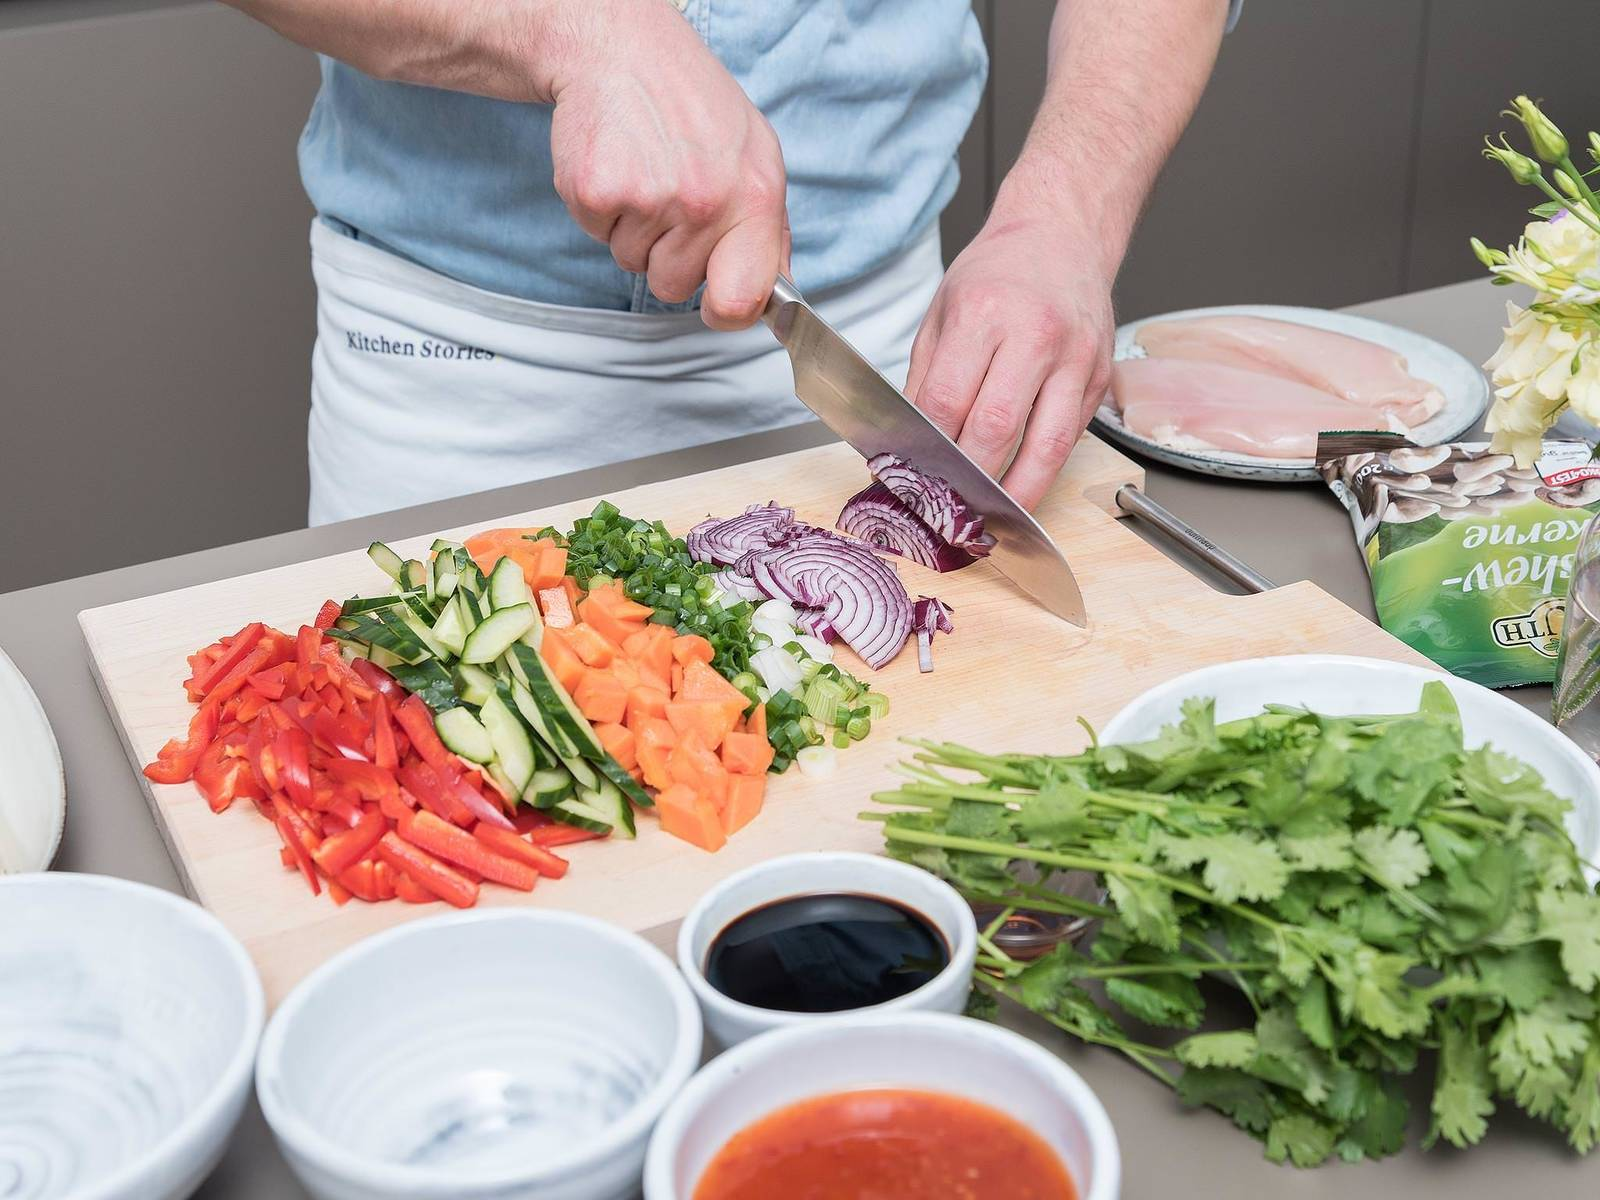 Dice bell pepper and papaya. Chop sugar snap peas. Quarter, deseed, and slice cucumber. Finely slice green onion and mince red onion. Chop cilantro. Transfer all chopped vegetables and herbs, as well as toasted cashews, to a large mixing bowl.